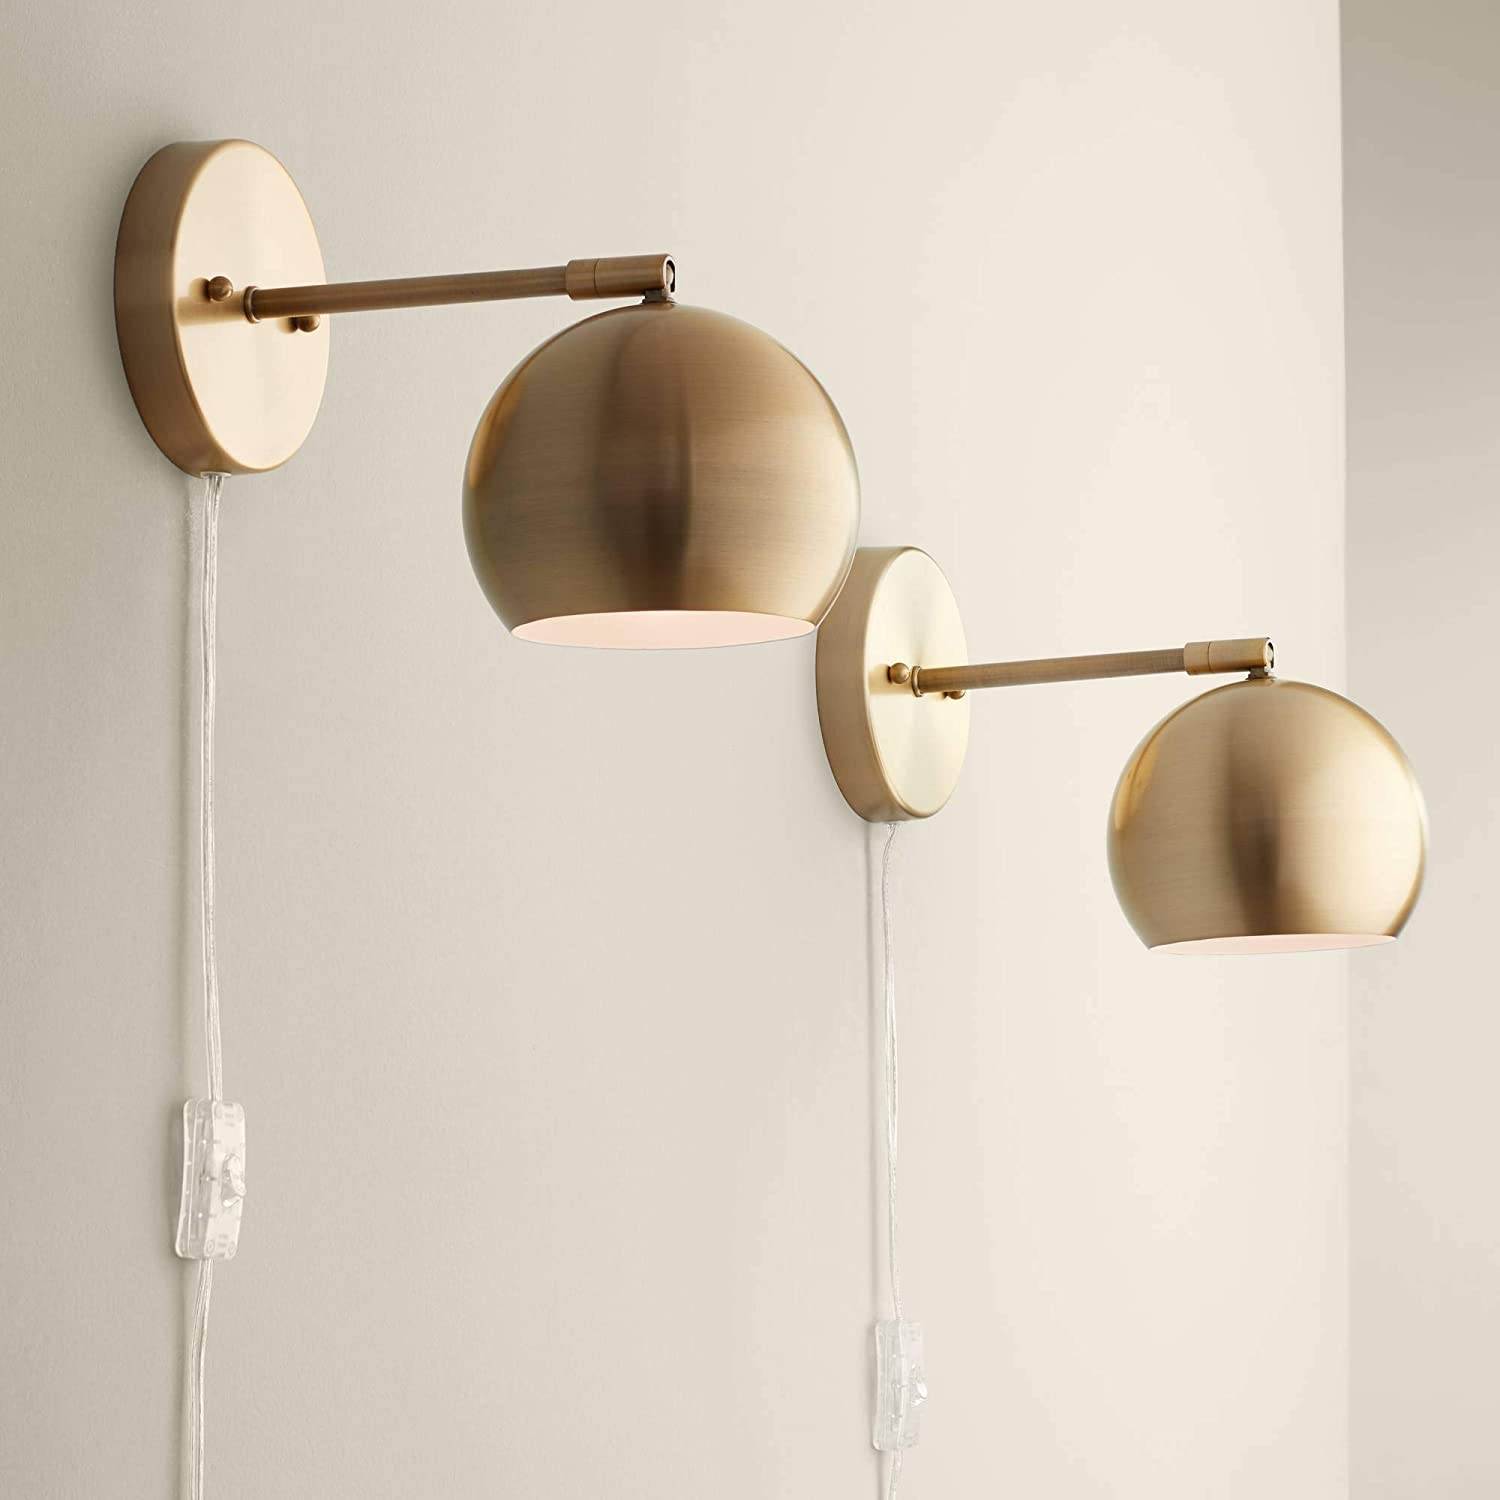 Luxury Modern Wall Sconces Lighting High Quality Black Cloth Lampshade Wall Lamp Living Room Bedroom Gold Bronze Wall Lights Led Indoor Wall Lamps